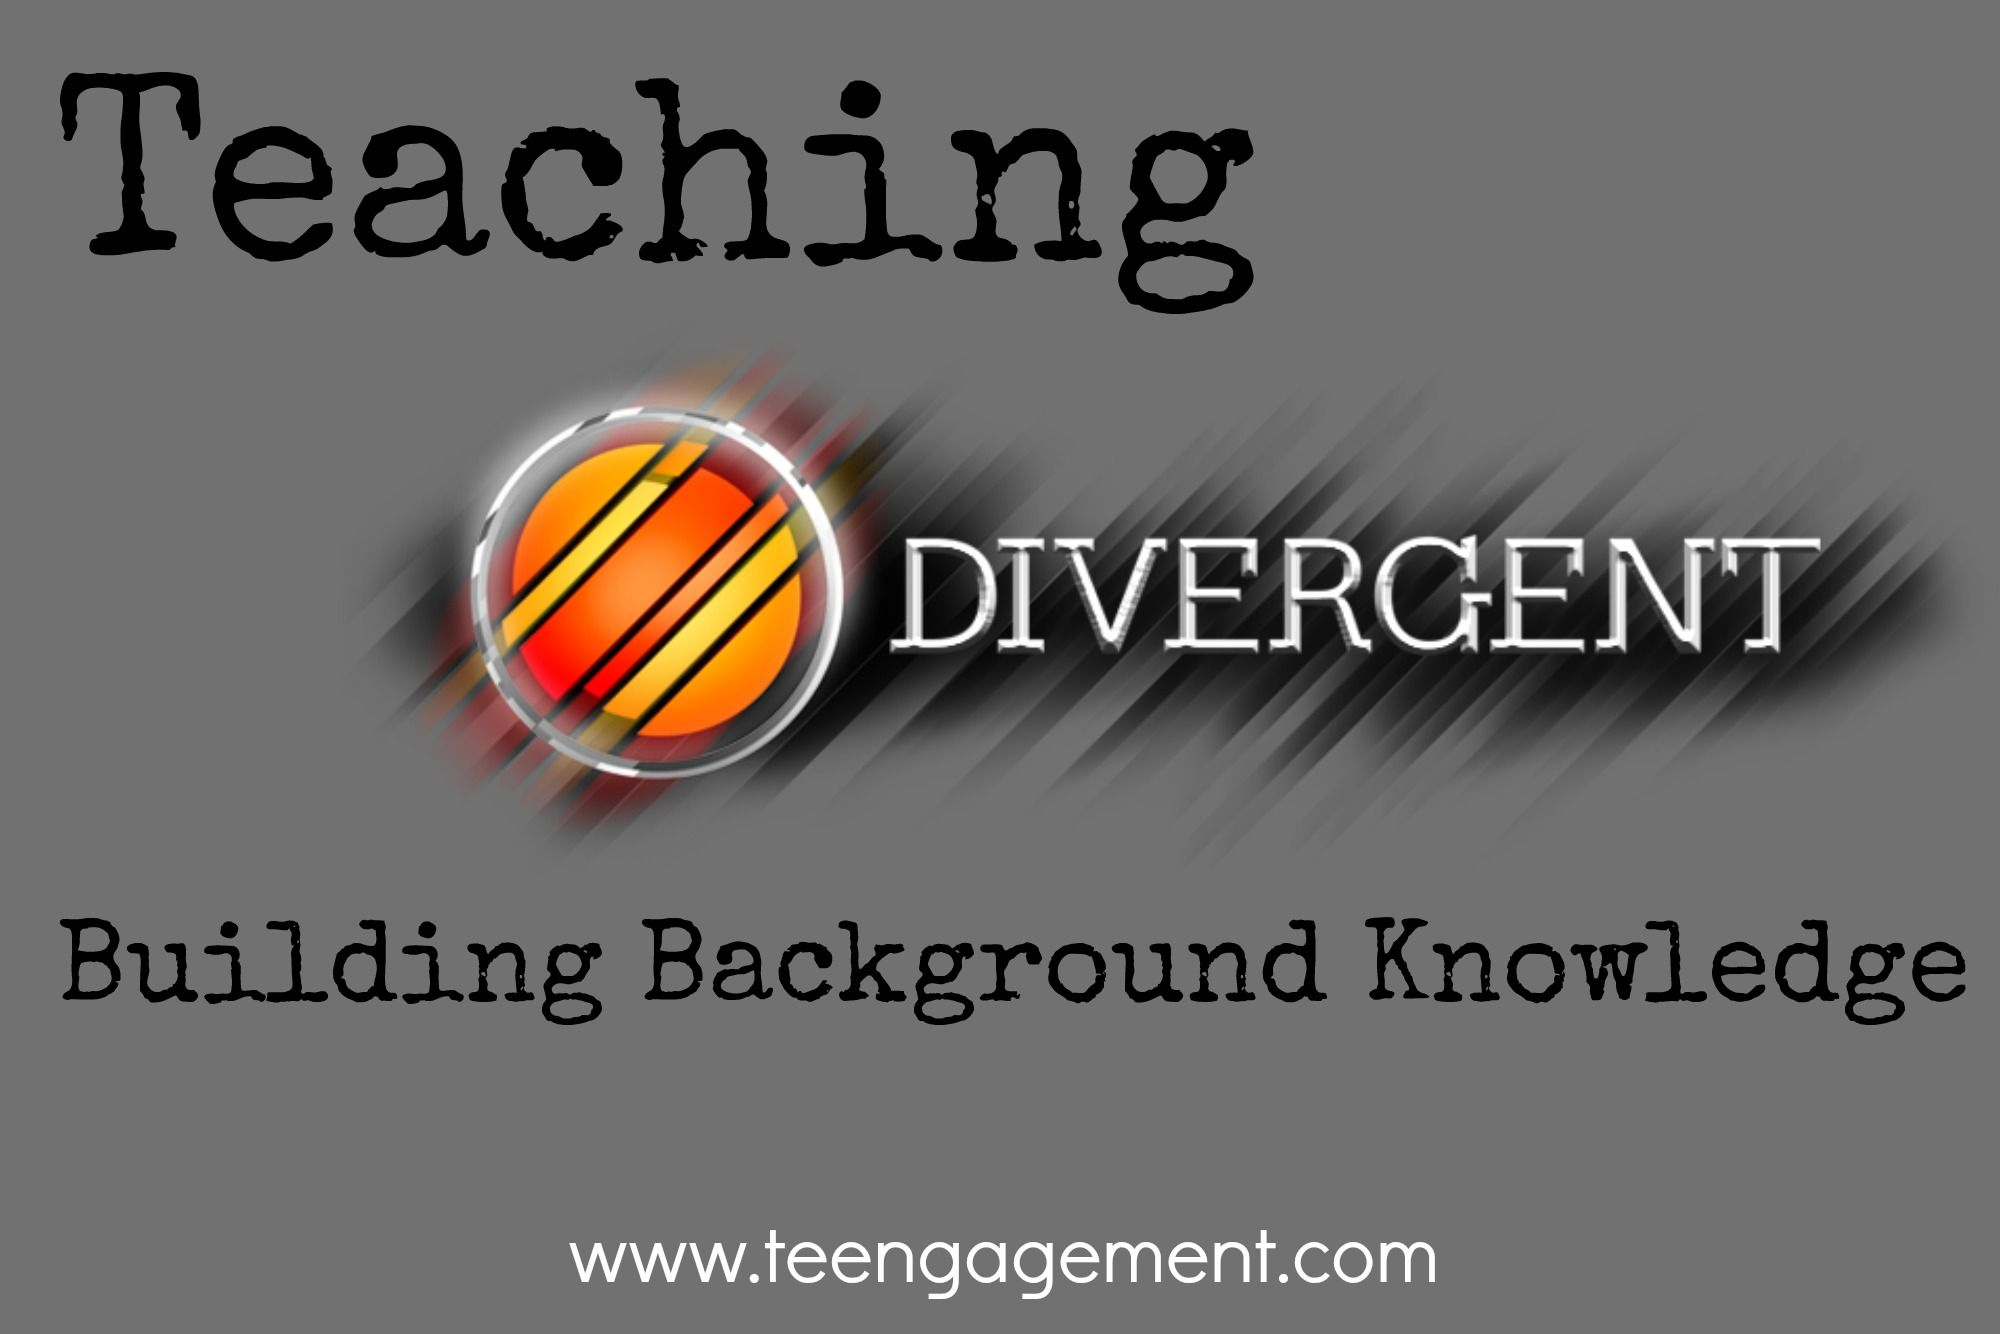 Four Resources For Teaching Divergent